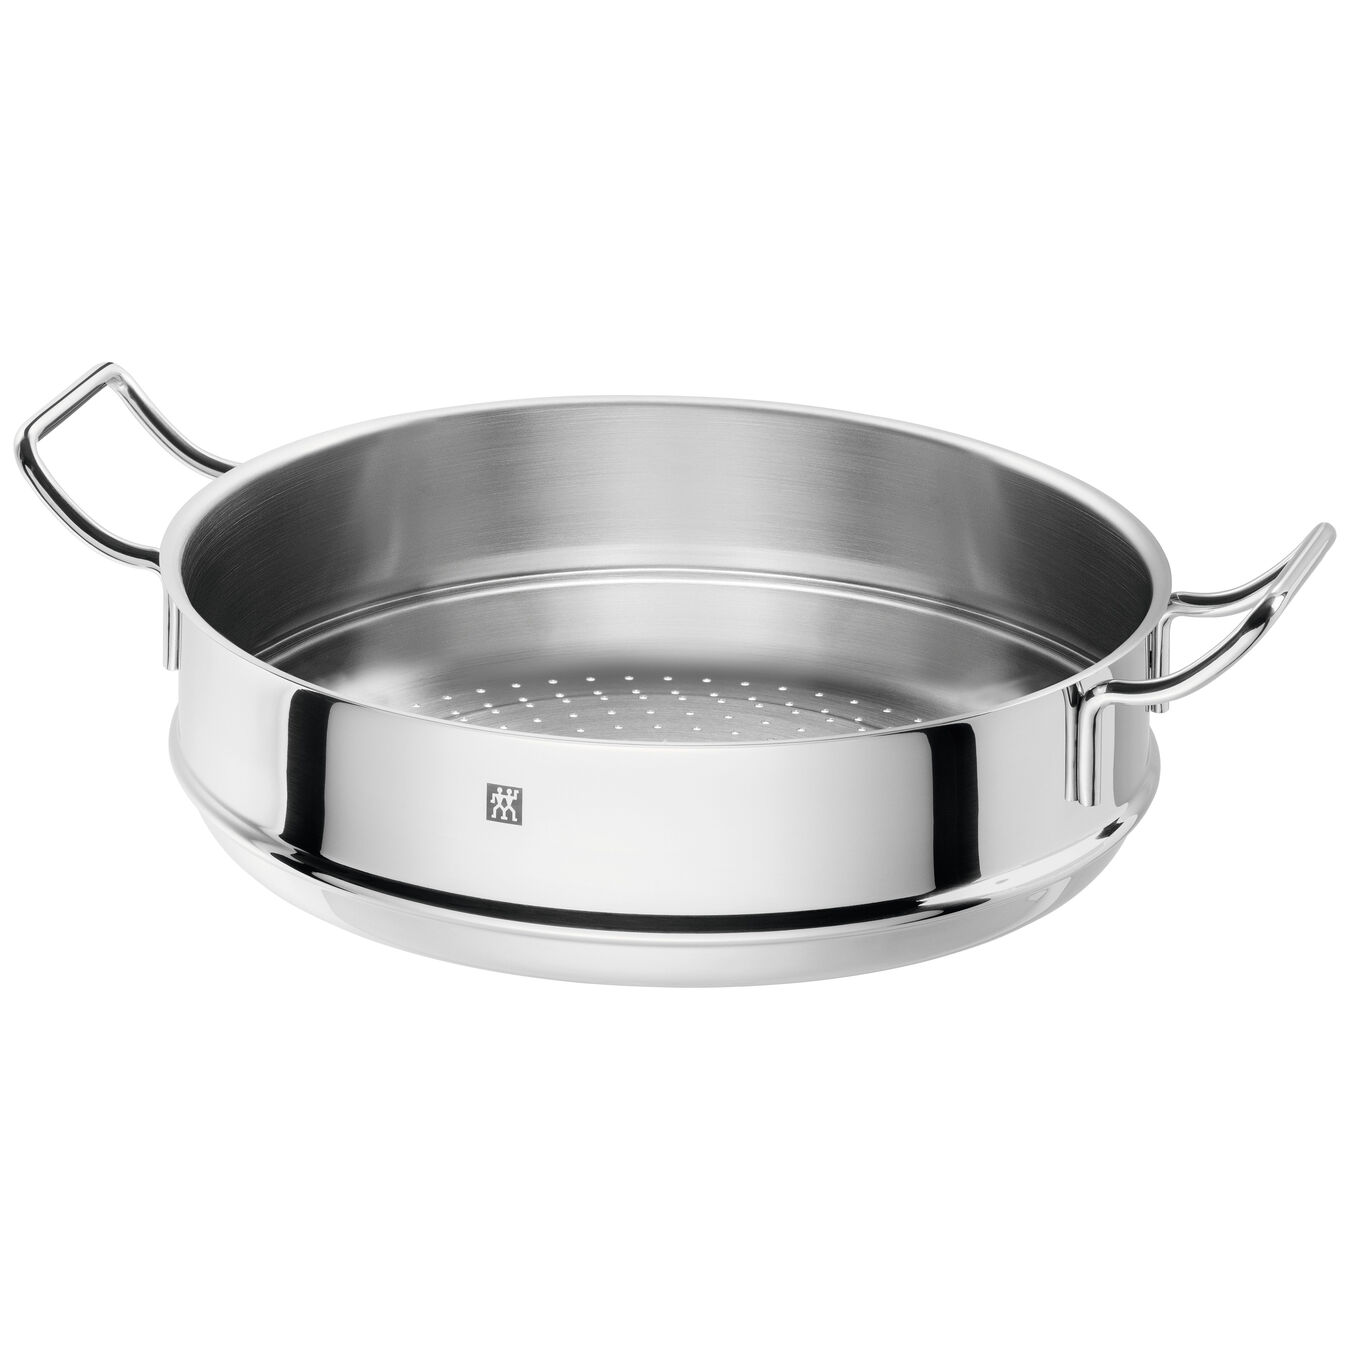 3 Piece 18/10 Stainless Steel wok with steamer and lid,,large 3